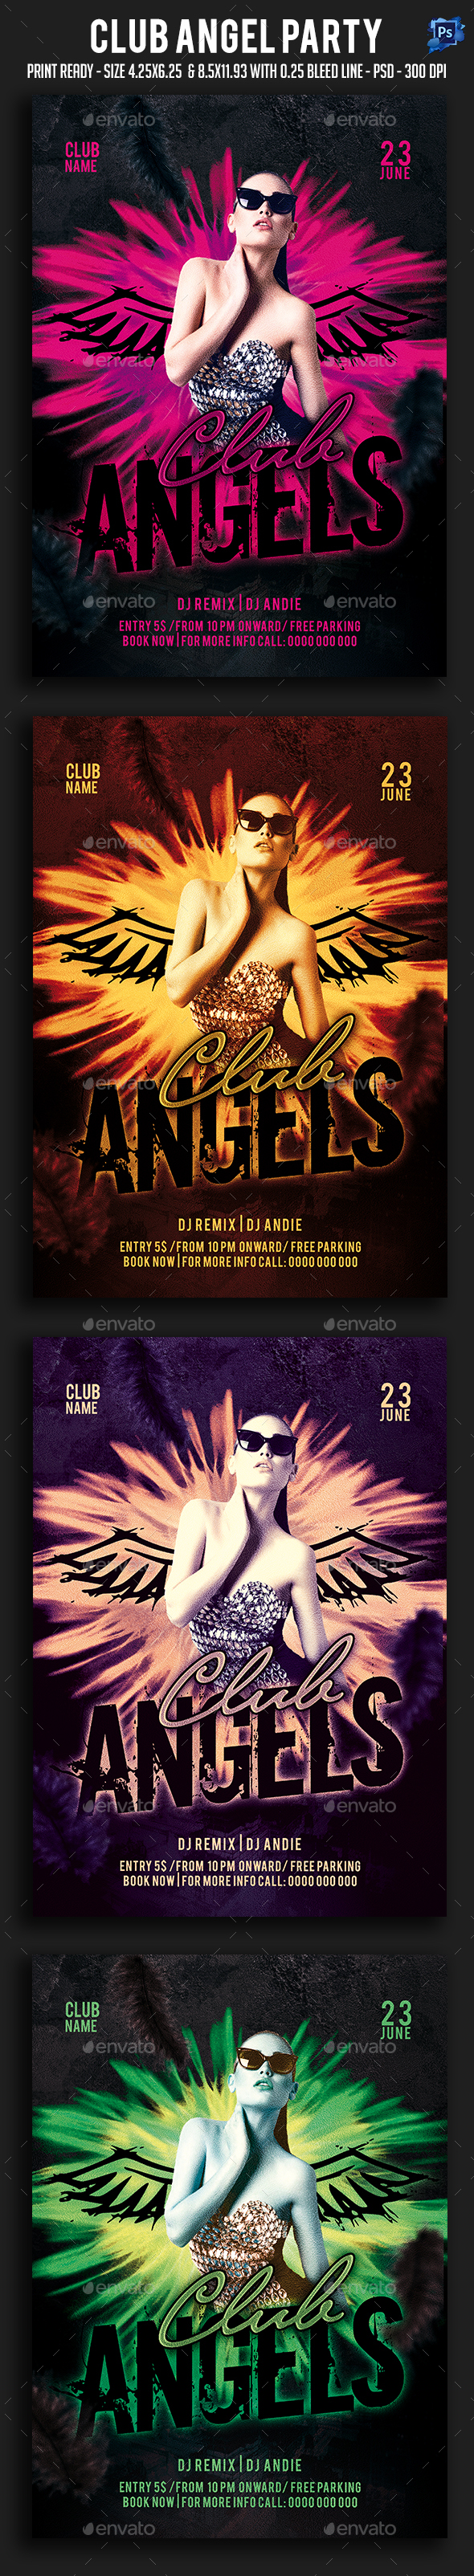 Club Angel Party Flyer - Clubs & Parties Events